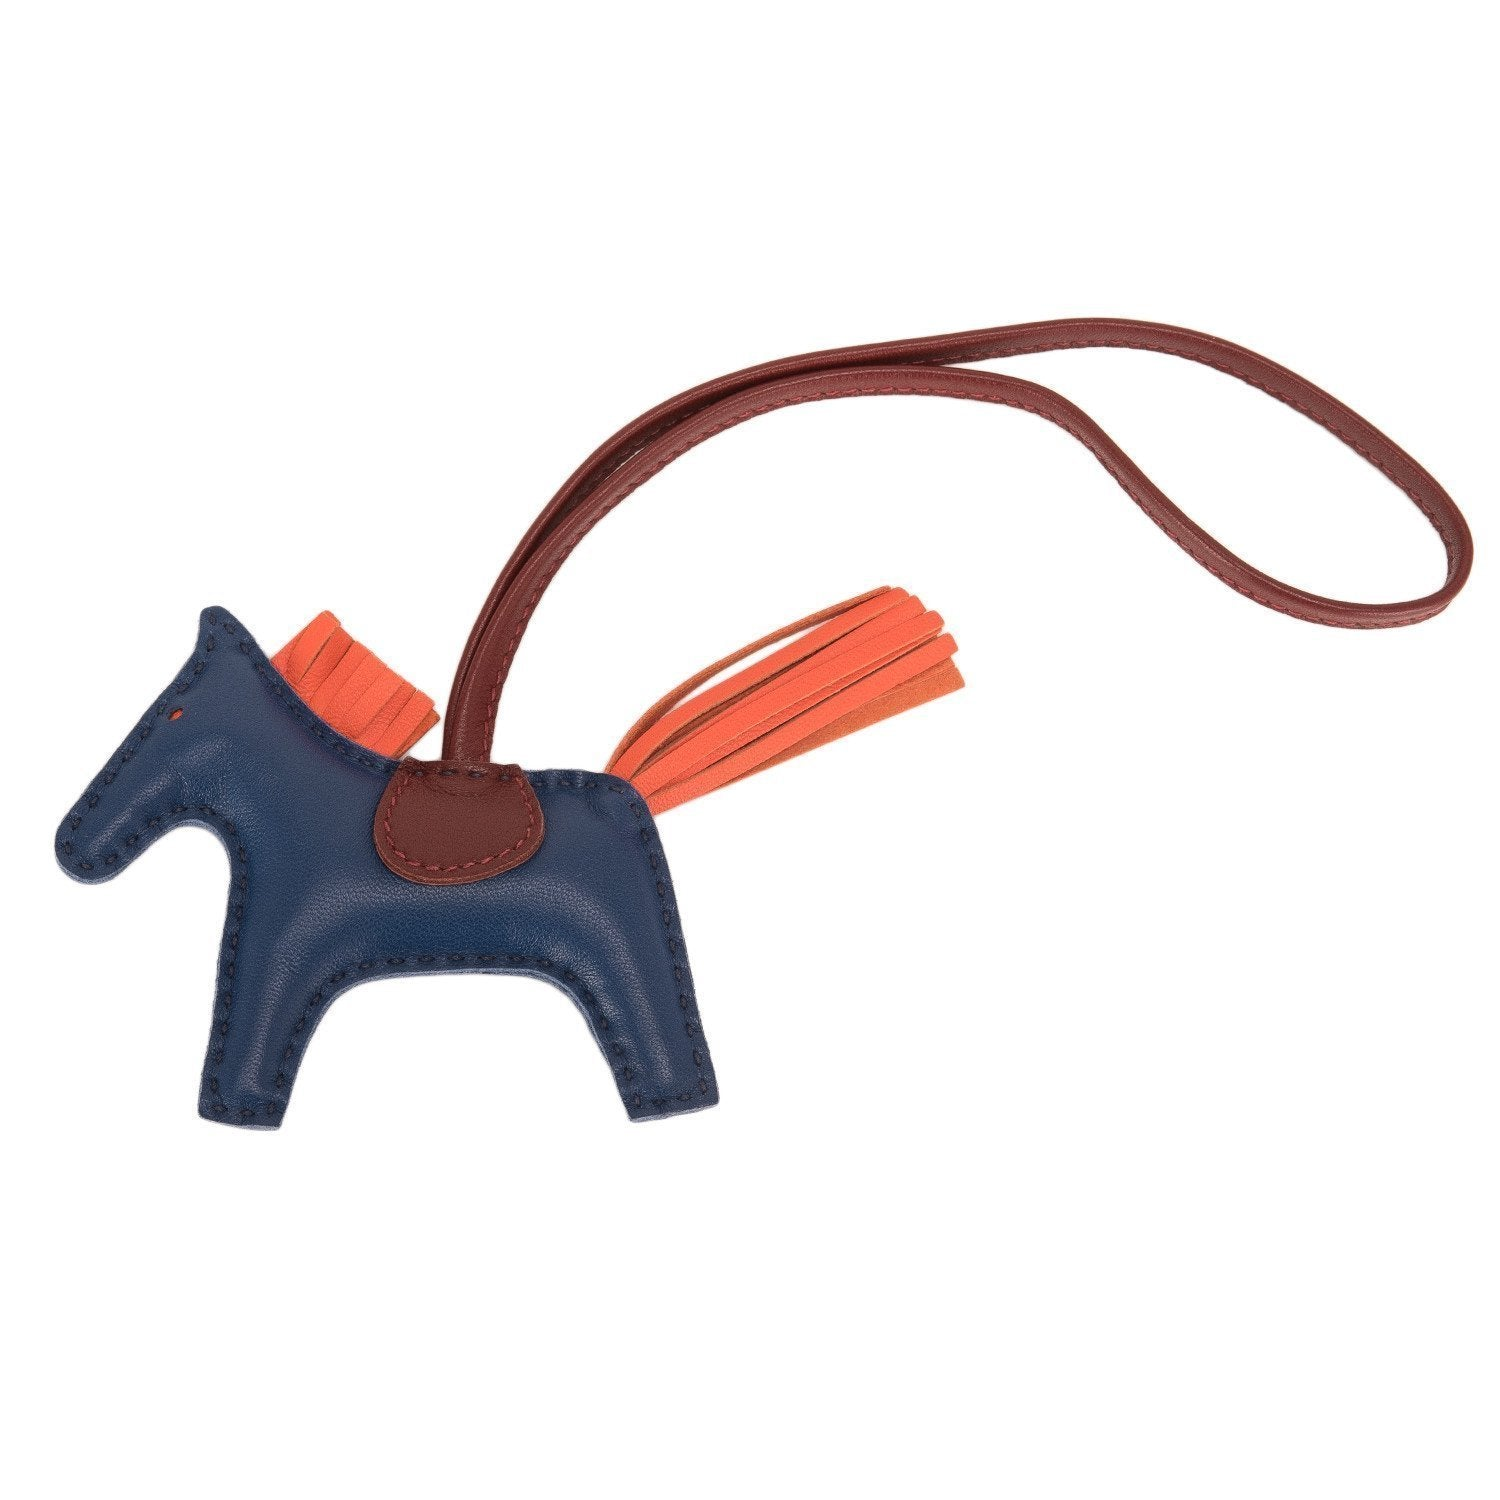 Hermes Blue De Malte Rodeo Bag Charm Pm Accessories